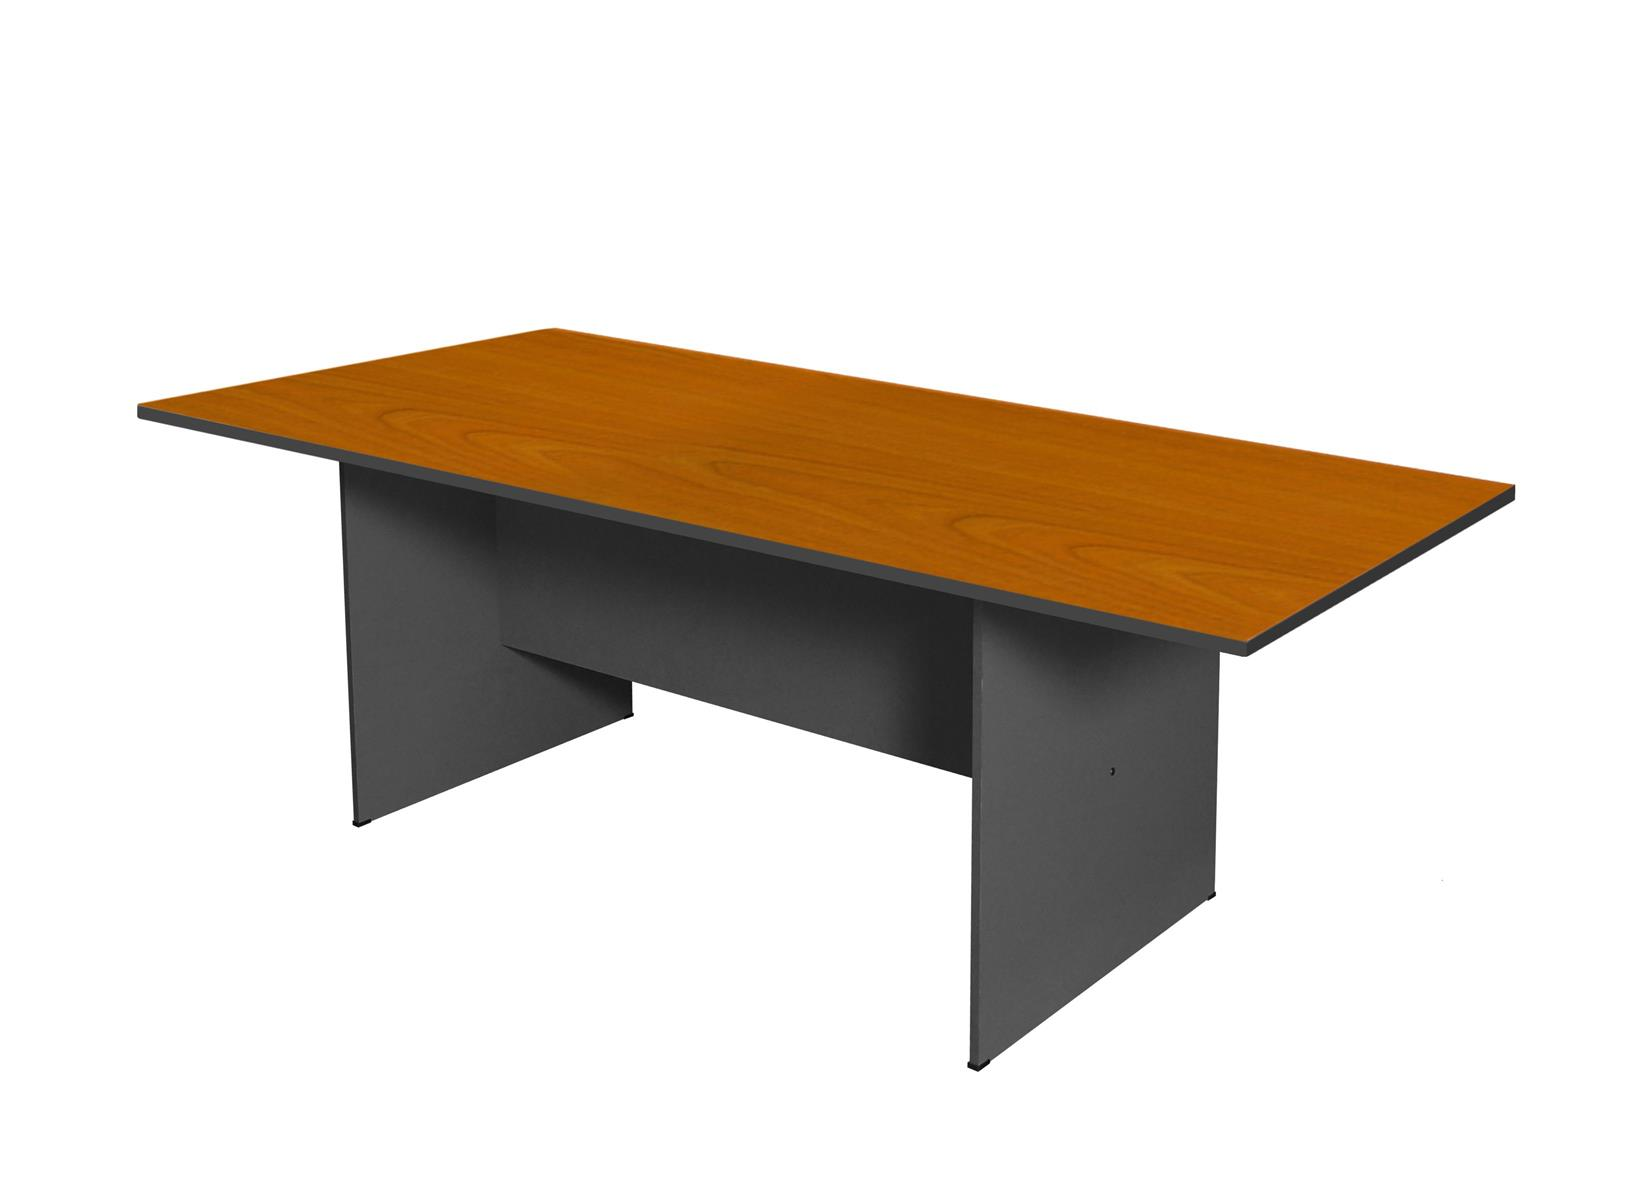 Rectangular Conference Tables / Meeting Tables / Office Tables AV-24C